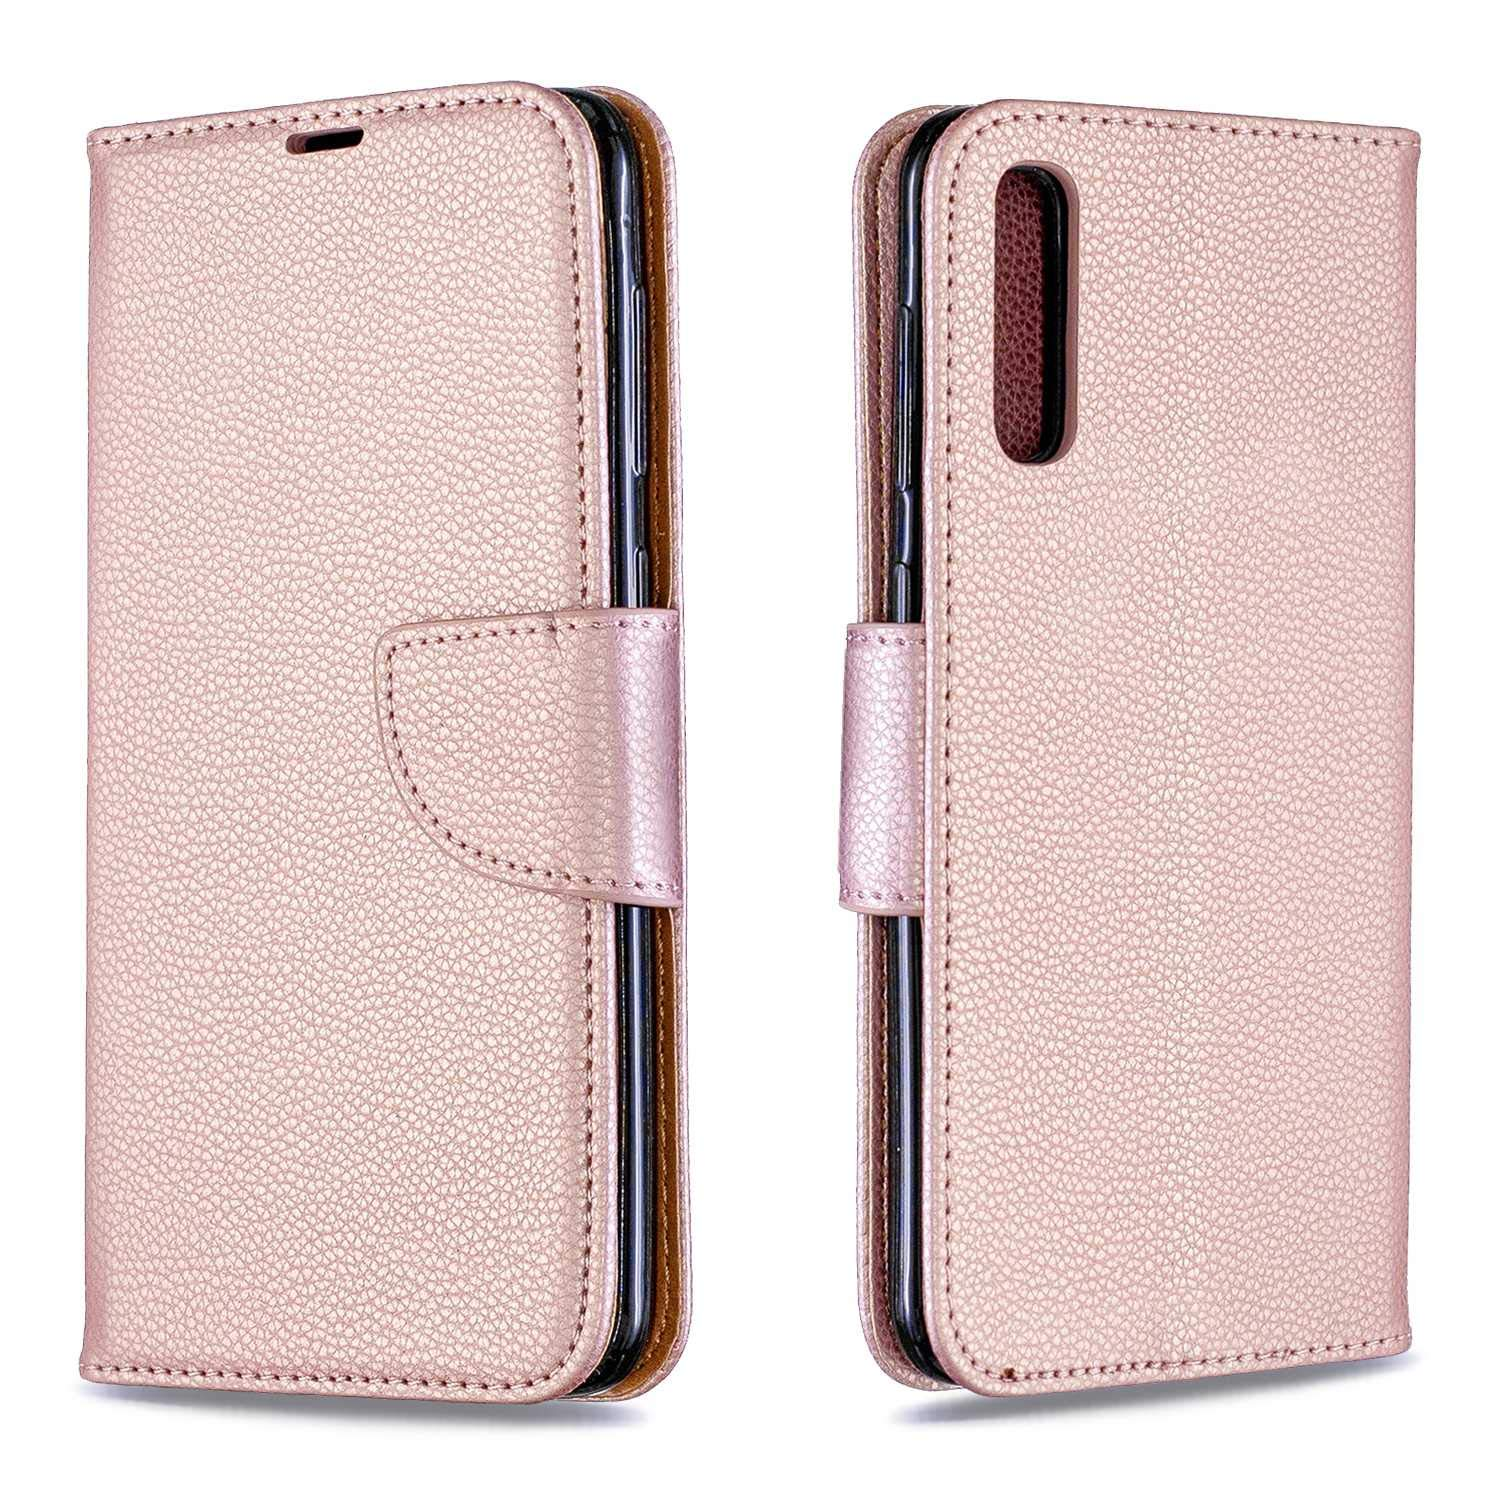 Galaxy A50 Case, Bear Village Premium PU Wallet Protective Case with Kickstand Function, Wrist Strap and Card Slots for Samsung Galaxy A50, Rose Gold by Bear Village